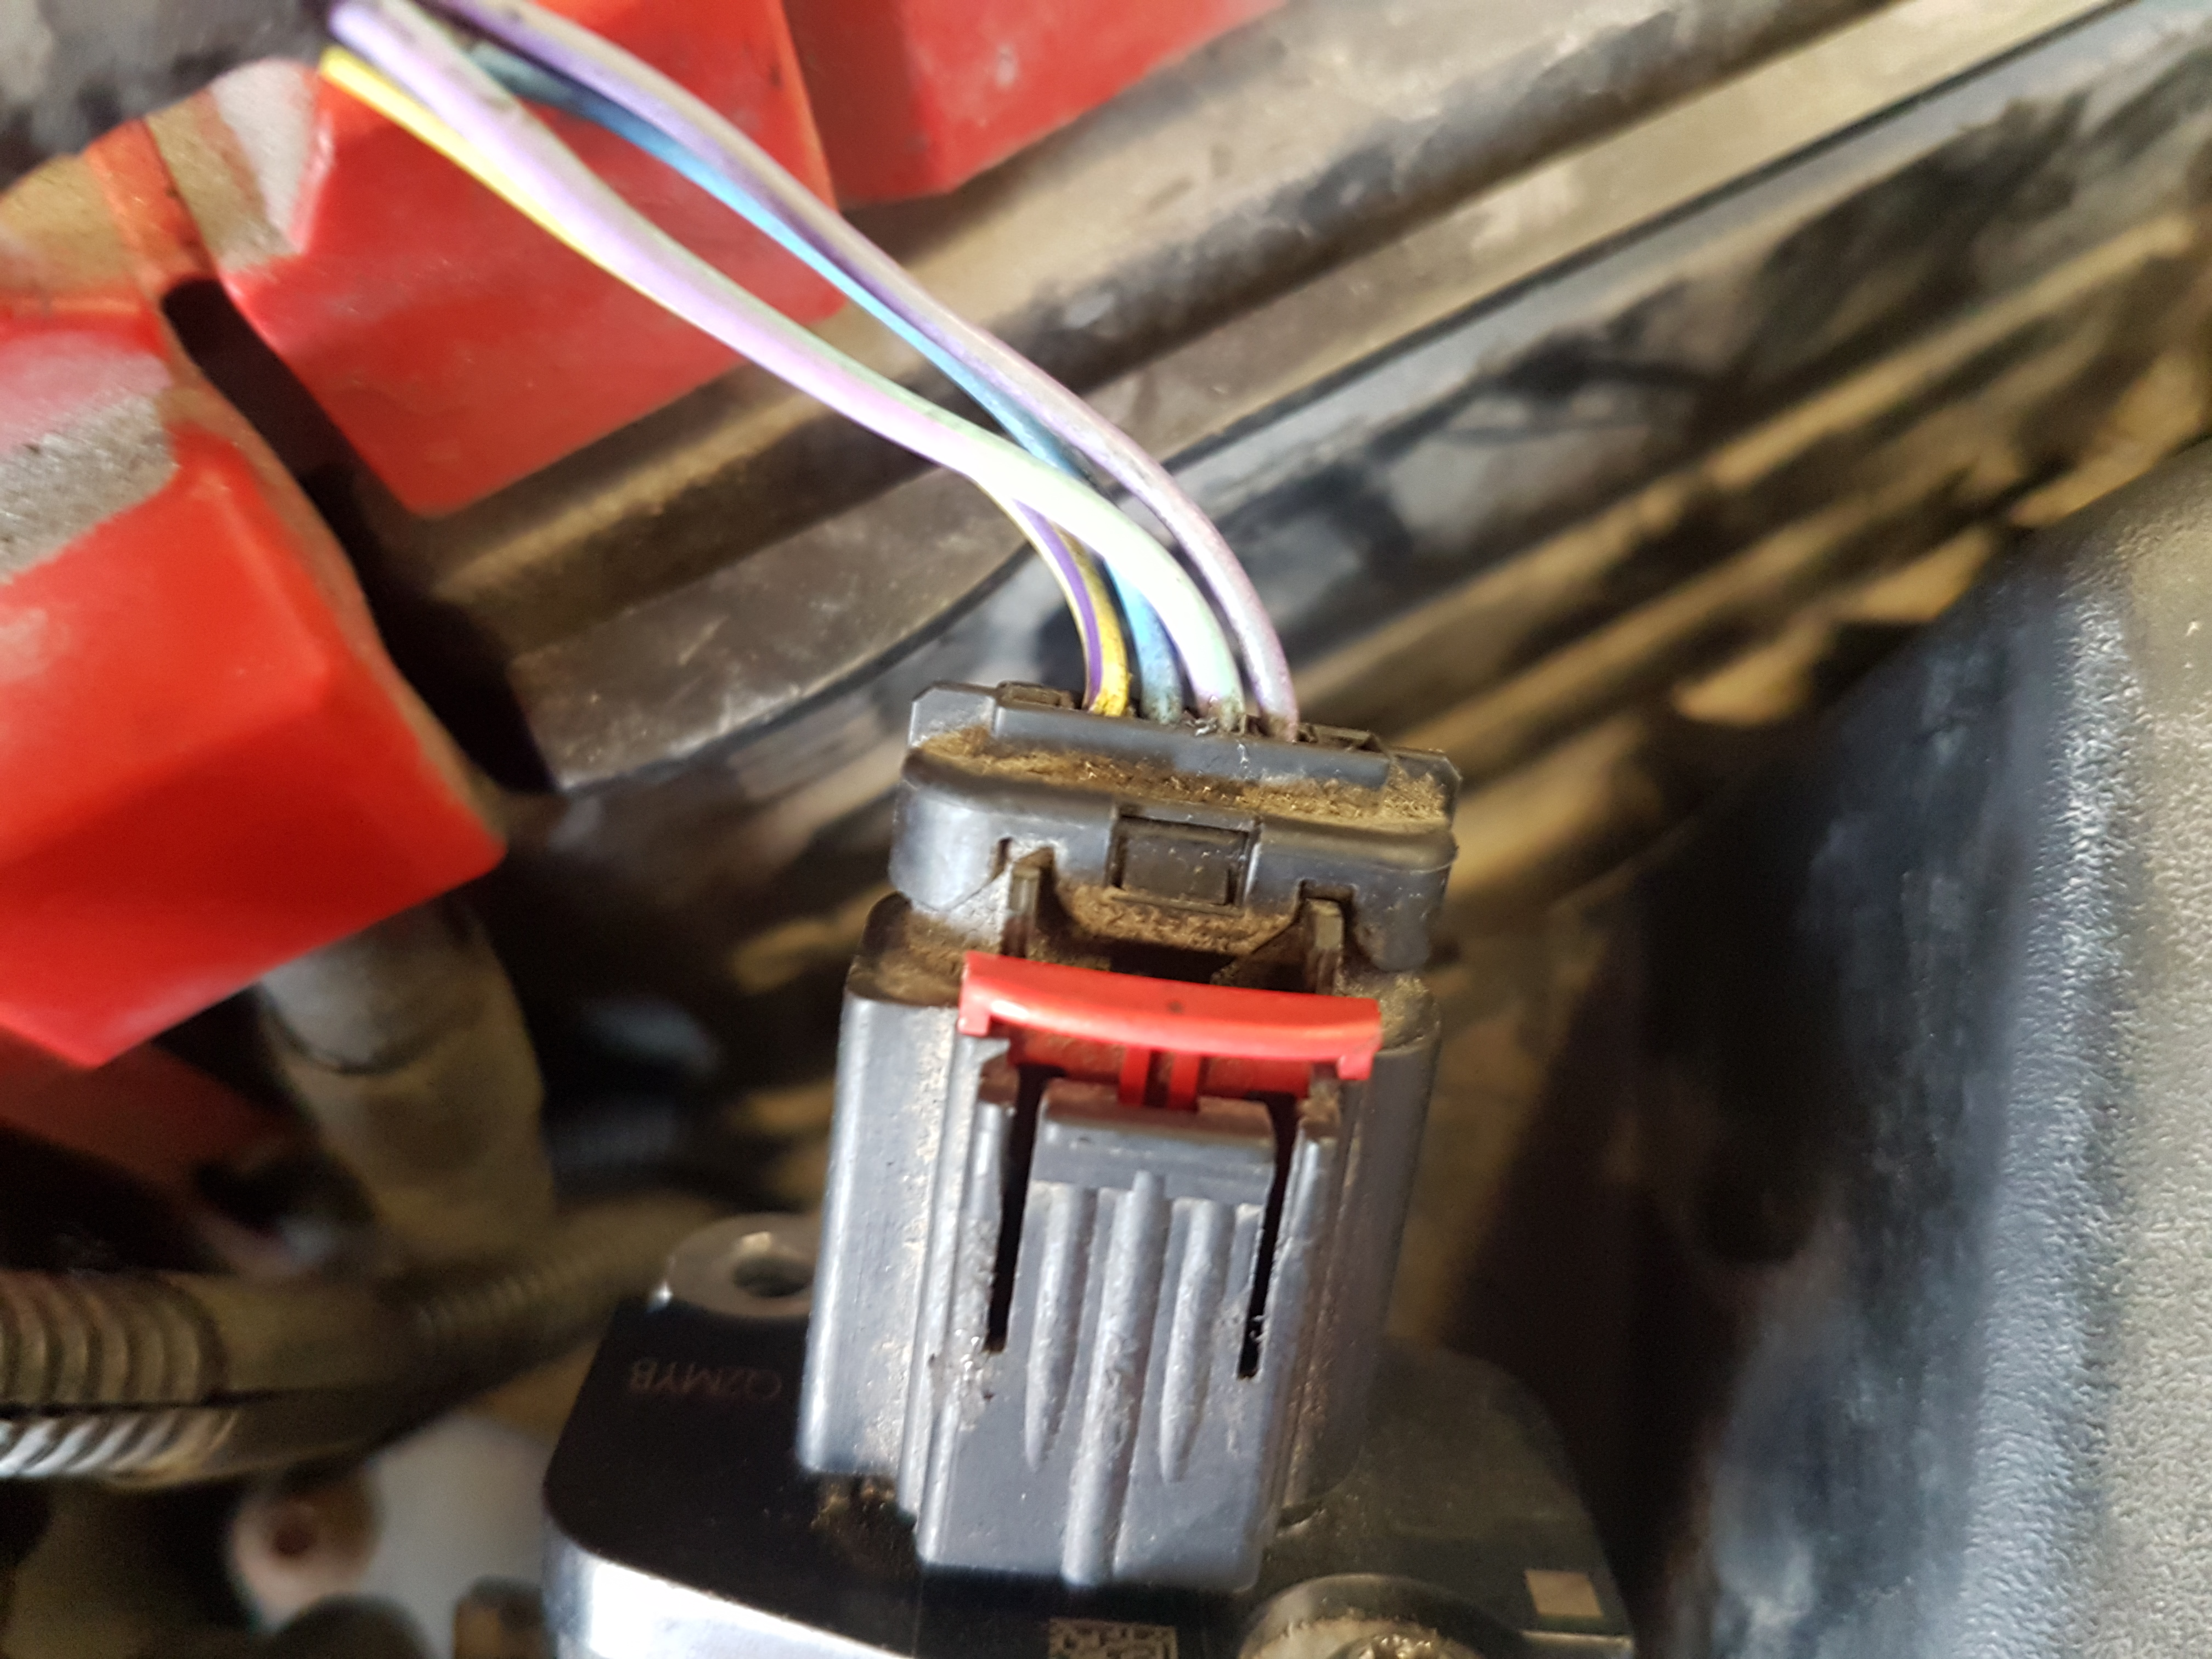 Ford B Max Ecoboost Maf Sensor Professional Motor Mechanic Automotive Wiring Specialist We Decided To Remove The Pin And Look For Damage As Have An Open Circuit This Could Be A Relatively Straight Forward Fix With Still